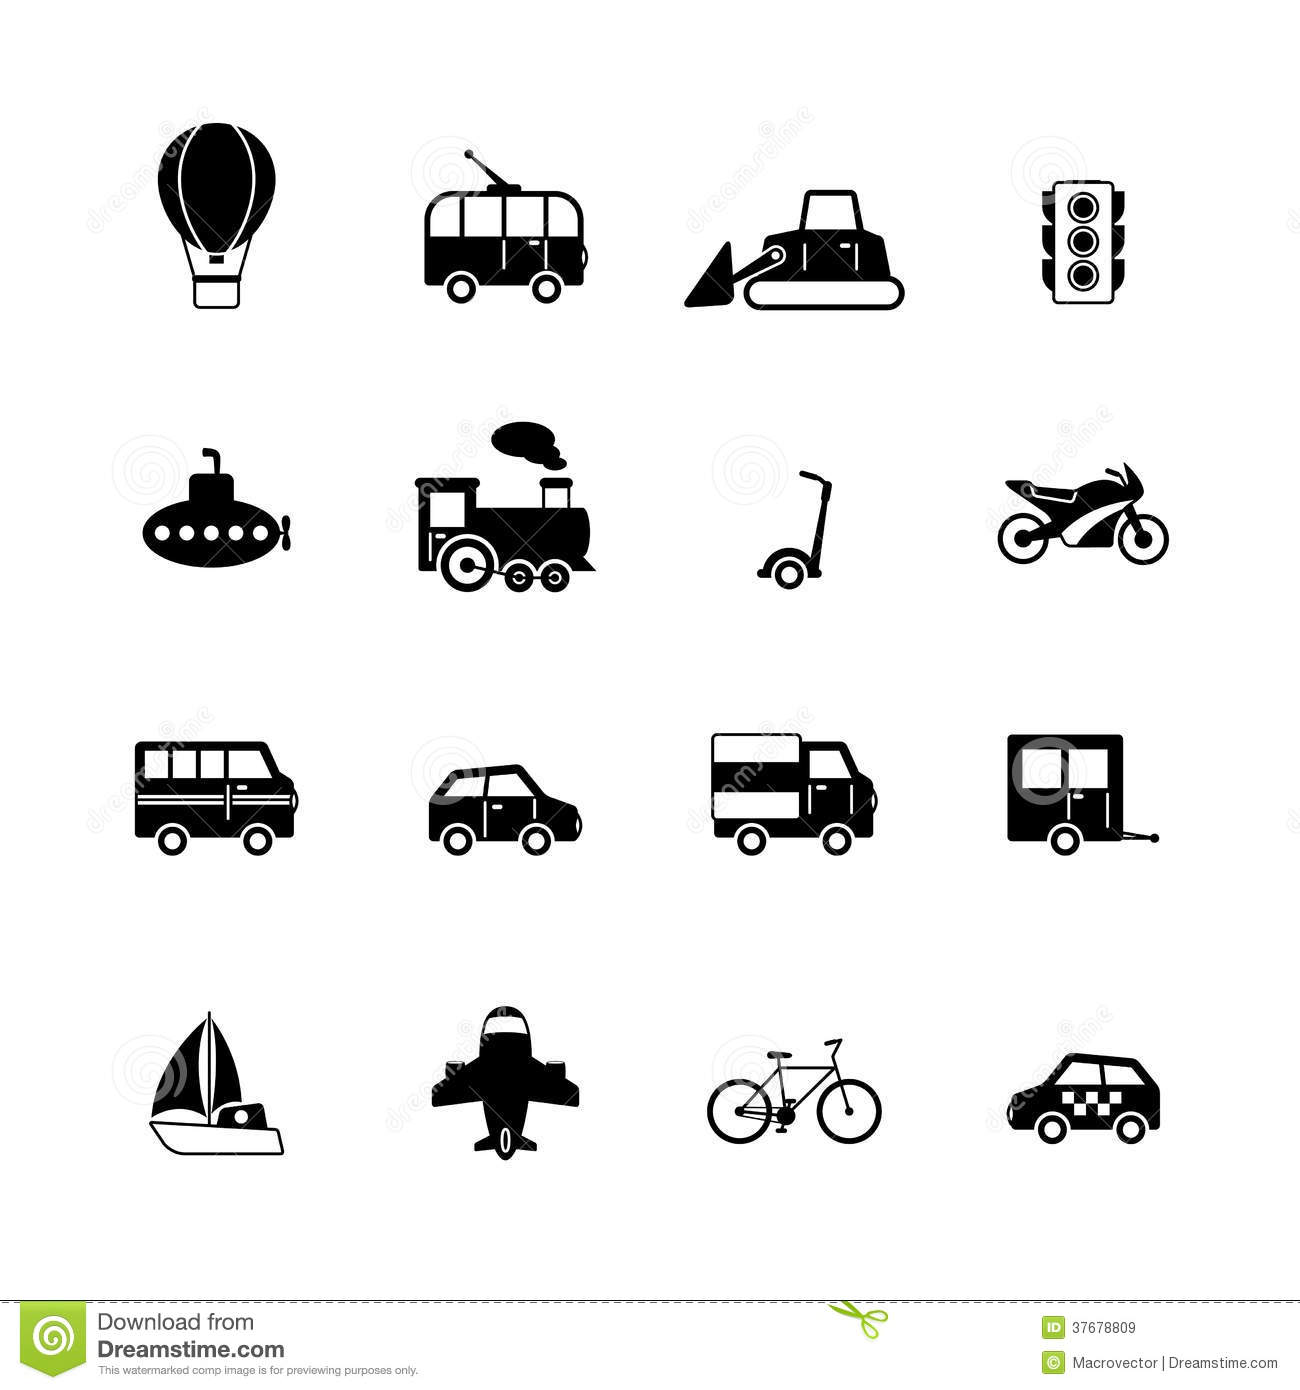 Stock Illustration Speedometer Icons Black Spedometer Red Pointer Vector Illustration Image42099724 likewise Big3xs together with Royalty Free Stock Photos Drawing Car Image7844748 besides Royalty Free Stock Images Transportation Pictograms Collection Passenger Train Tram Taxi Isolated Vector Illustration Image37678809 further Endstufe 100w Kd503 343045. on car audio community